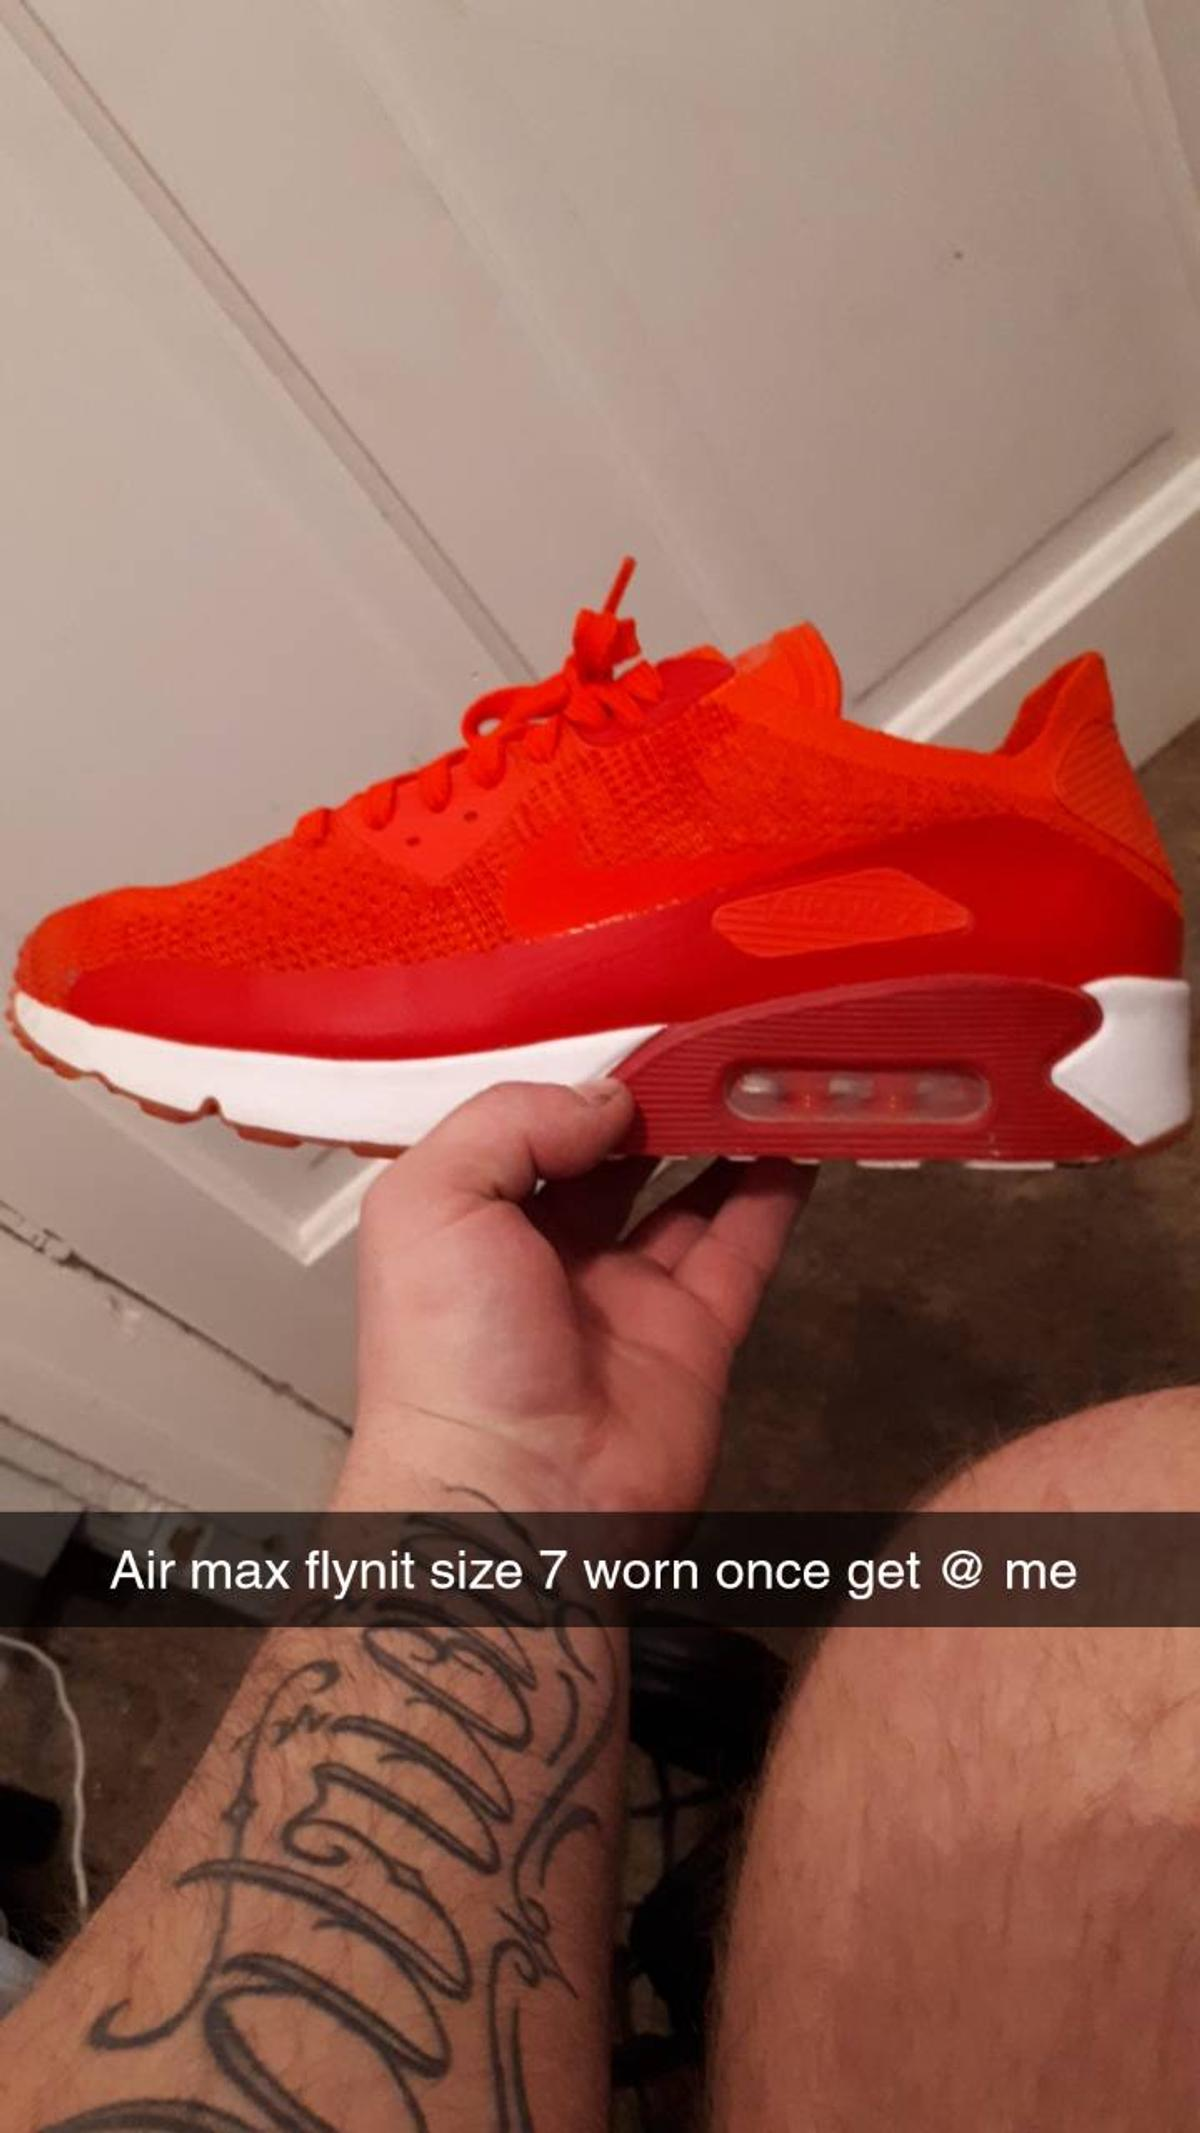 Size 7 Flynit Airmax's for sale, worn once for a matter of hours so in excellent condition, comes with box.  Delivery can be arranged if local, if not it will be collection only. Open to offers but not silly ones!